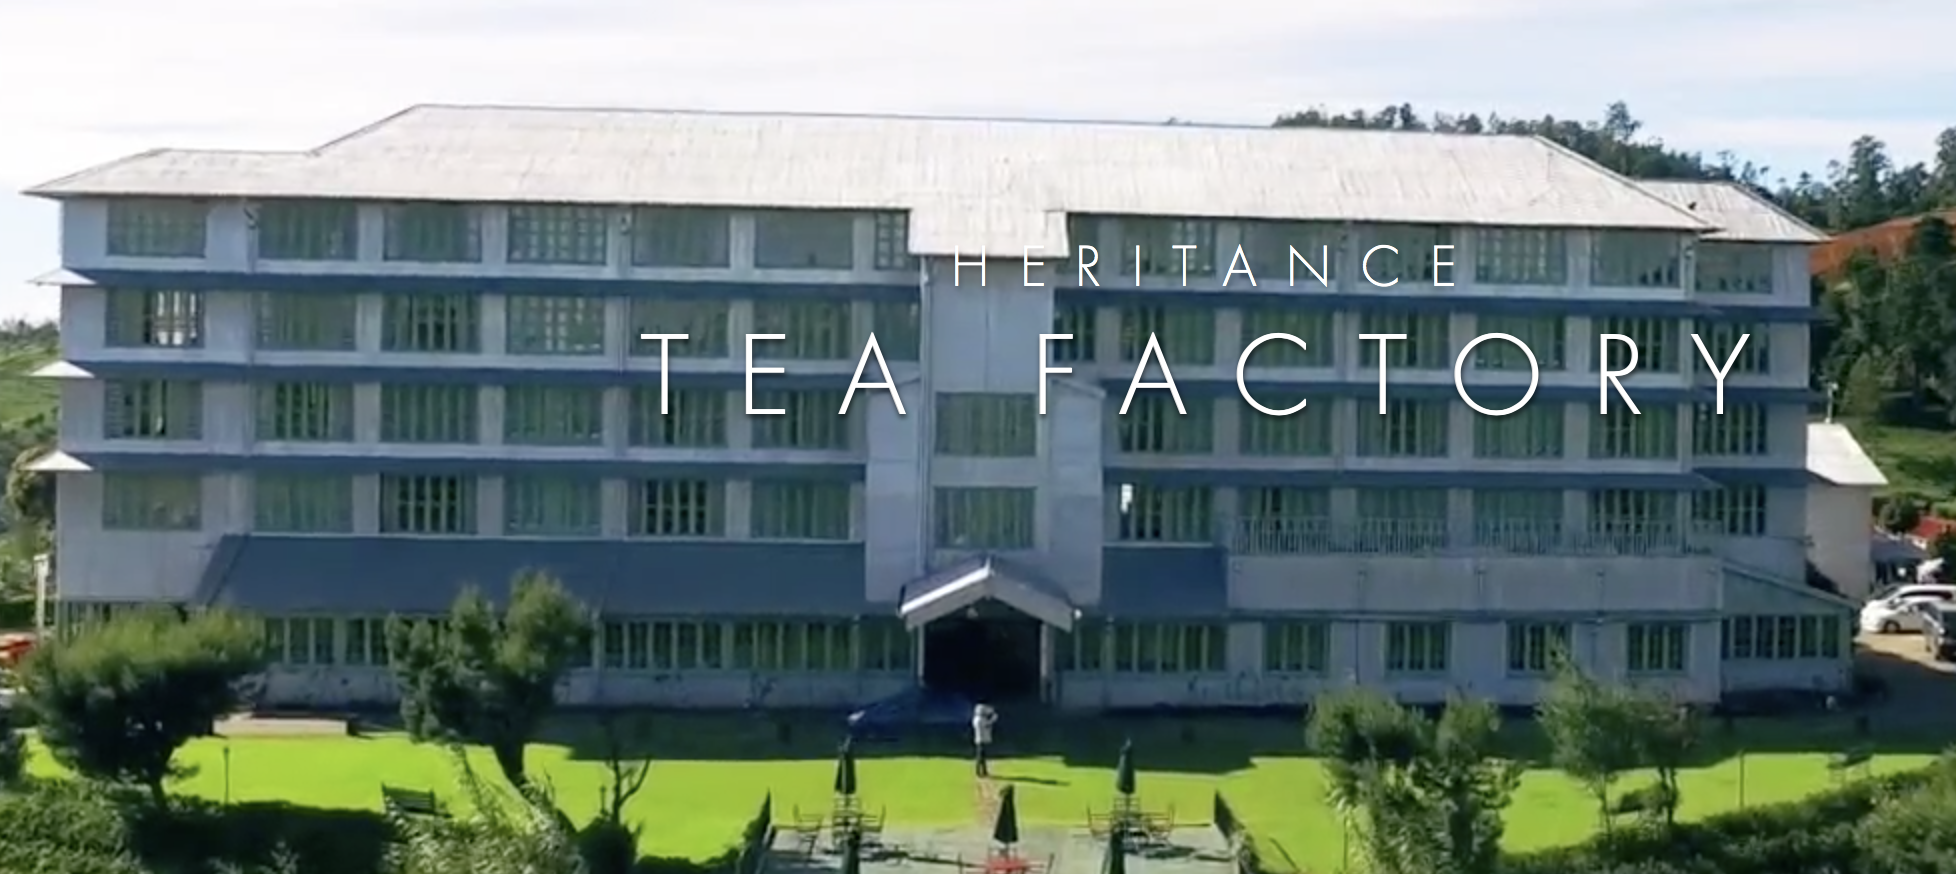 Heritance Tea Factoryの外観